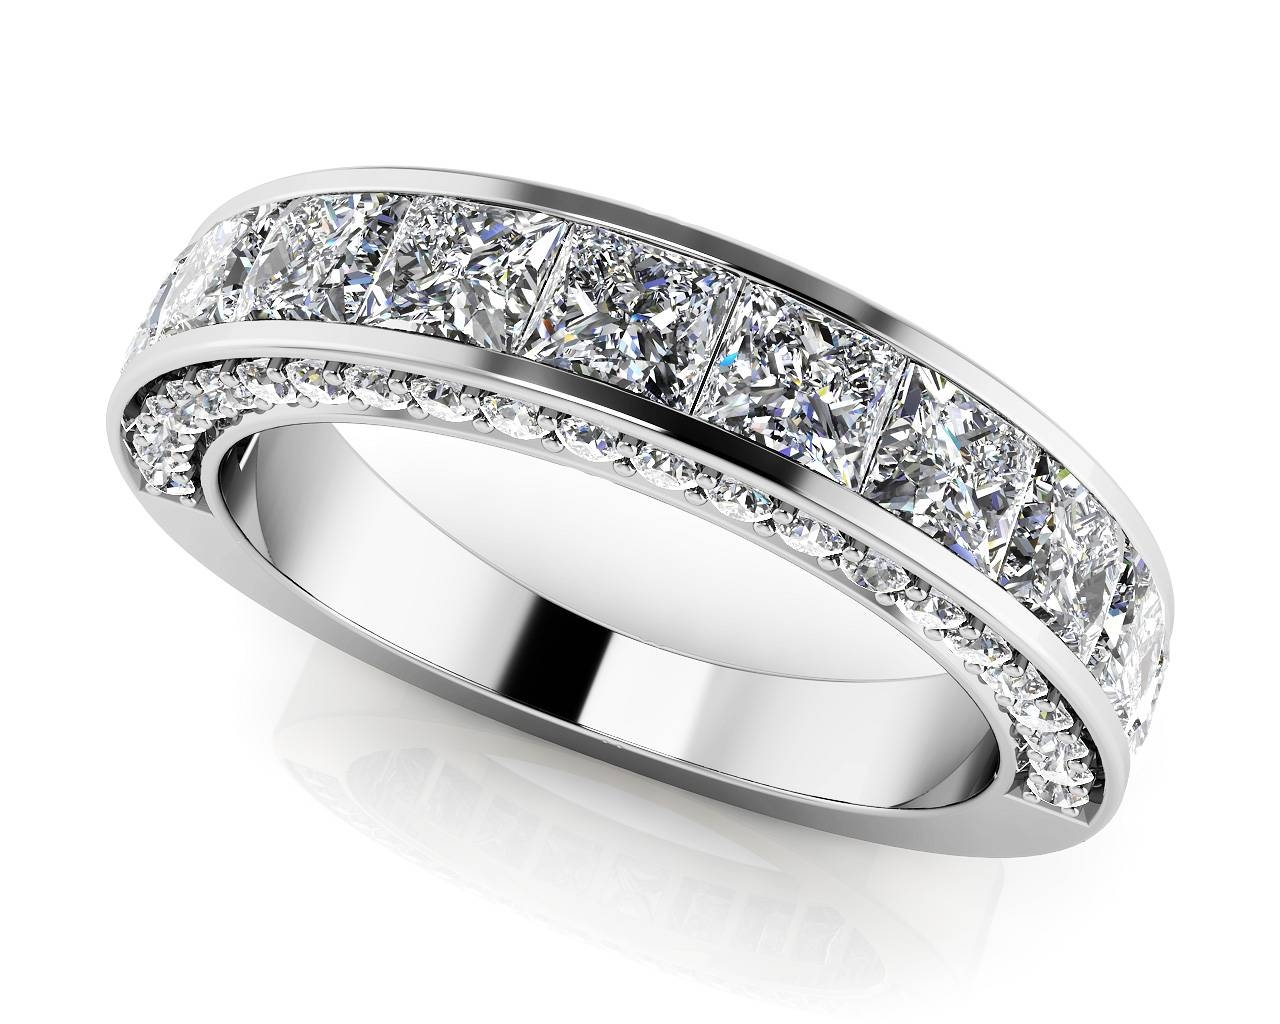 Design Your Own Diamond Anniversary Ring & Eternity Ring With Regard To Most Recent Eternity Anniversary Rings (Gallery 21 of 25)